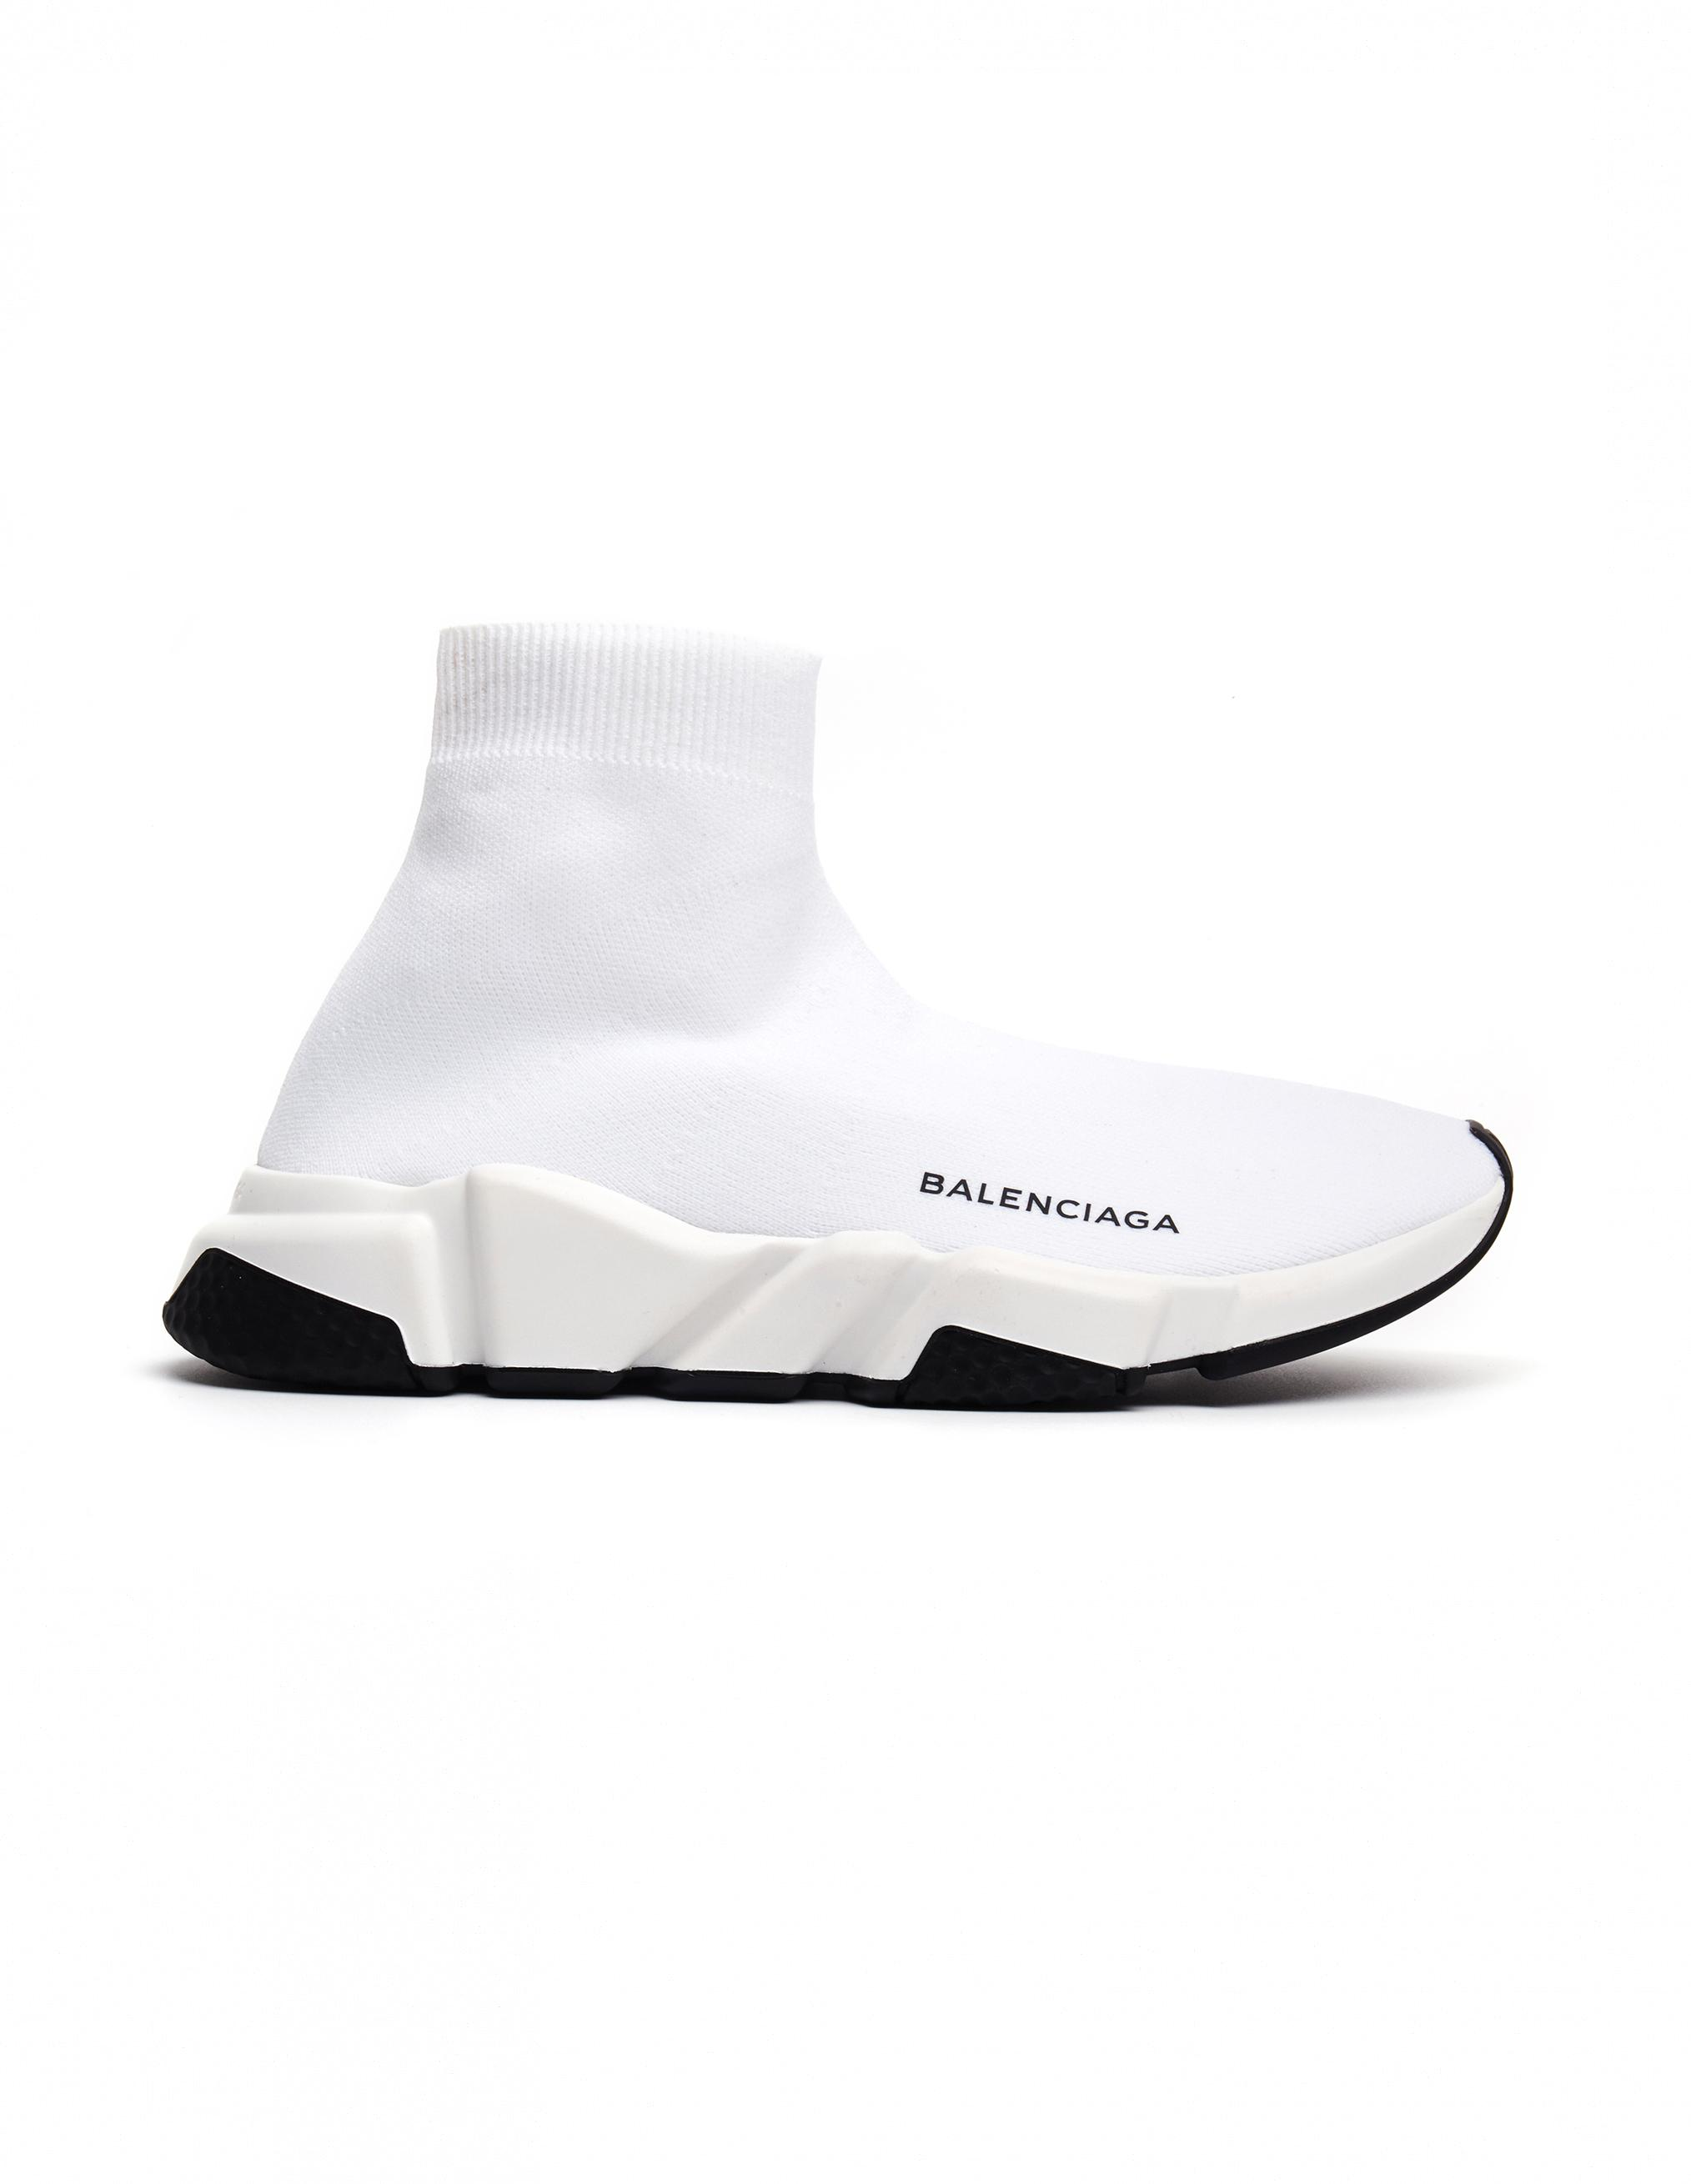 b09f6814a6eb order official 2018 balenciaga speed stretch knit low noir blanc noir sole  woxh8681 672f3 164ae  germany balenciaga white speed trainer sneakers lyst.  view ...